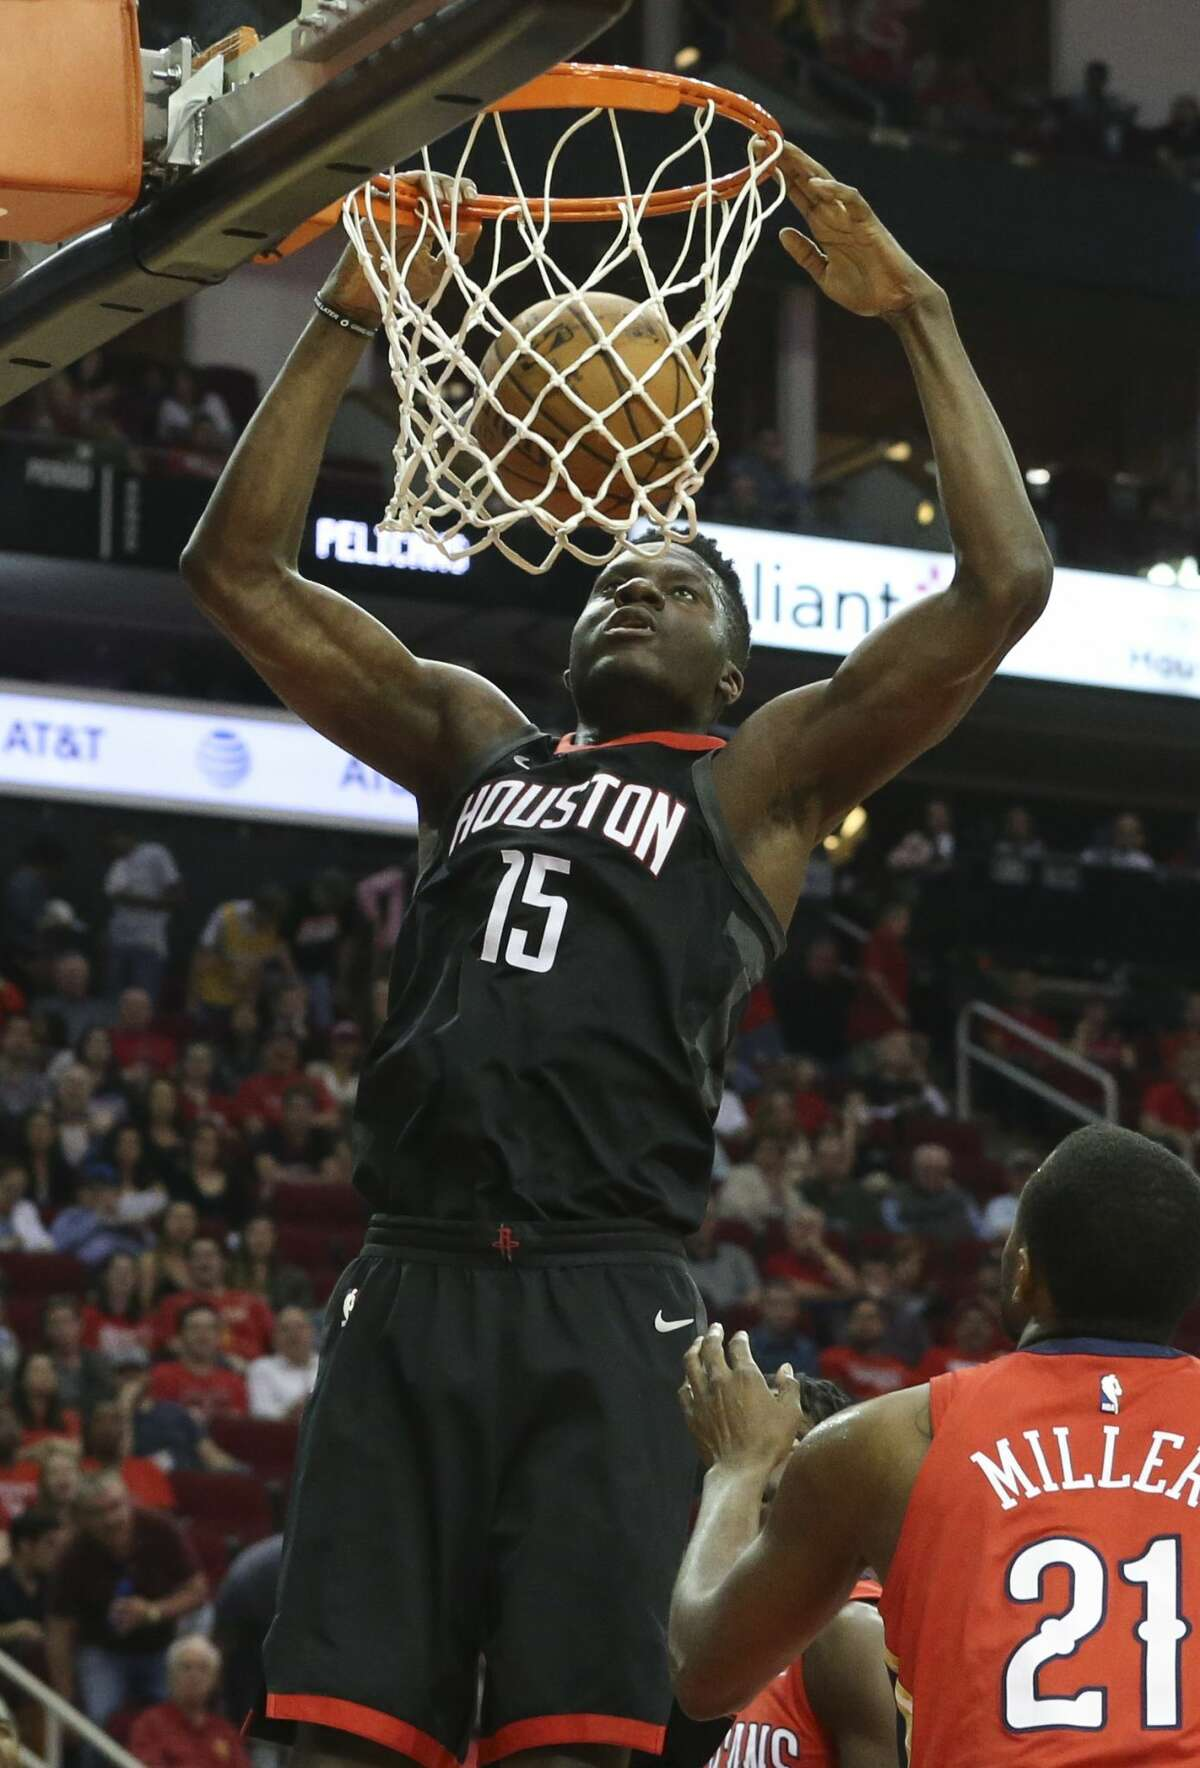 Houston Rockets center Clint Capela (15) dunks the ball during the first quarter of the NBA game against the New Orleans Pelicans at Toyota Center on Saturday, March 24, 2018, in Houston. ( Yi-Chin Lee / Houston Chronicle )